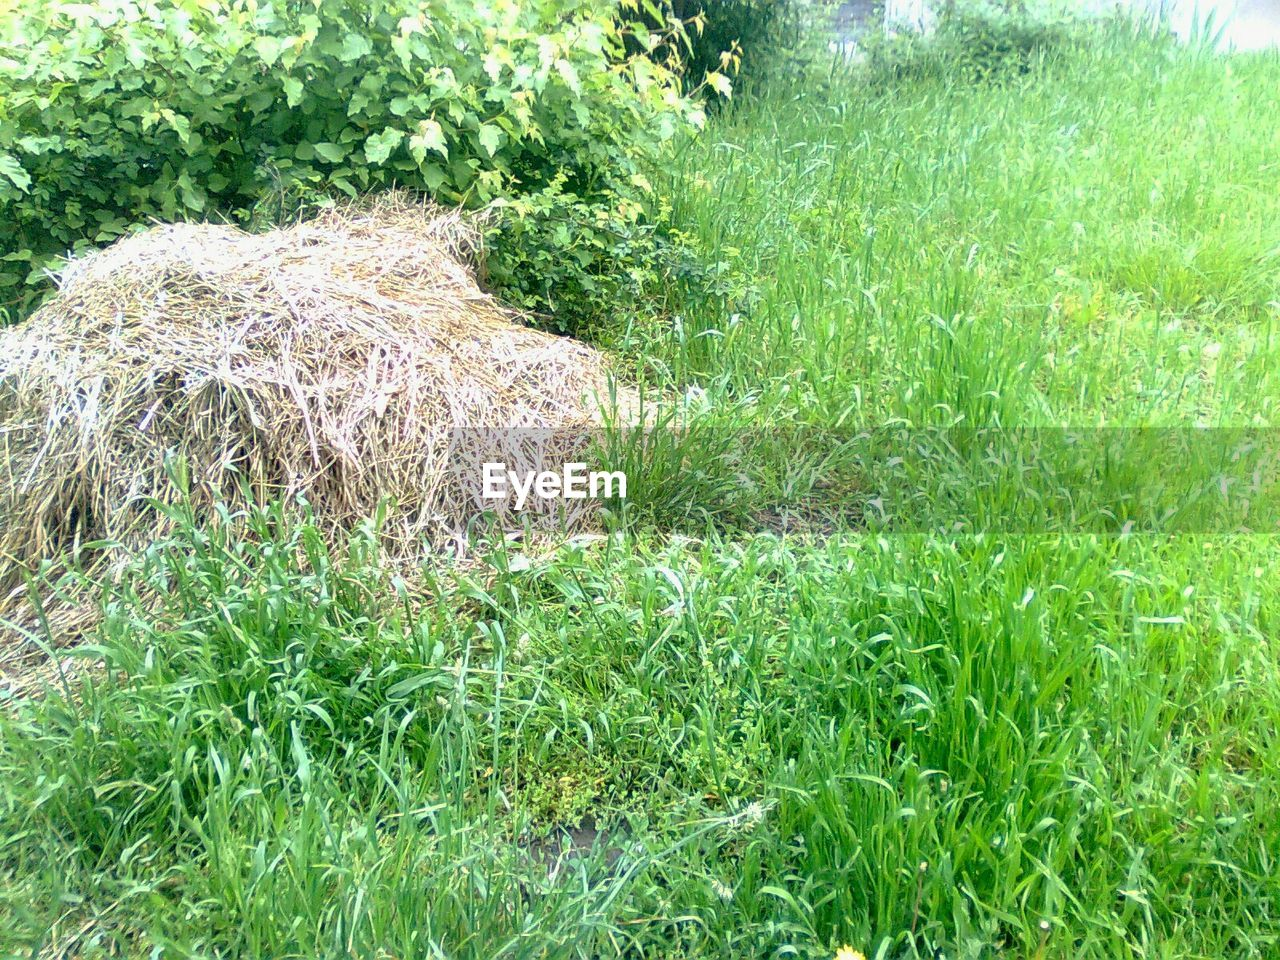 grass, field, growth, nature, green color, no people, outdoors, agriculture, day, plant, tranquility, beauty in nature, landscape, rural scene, hay bale